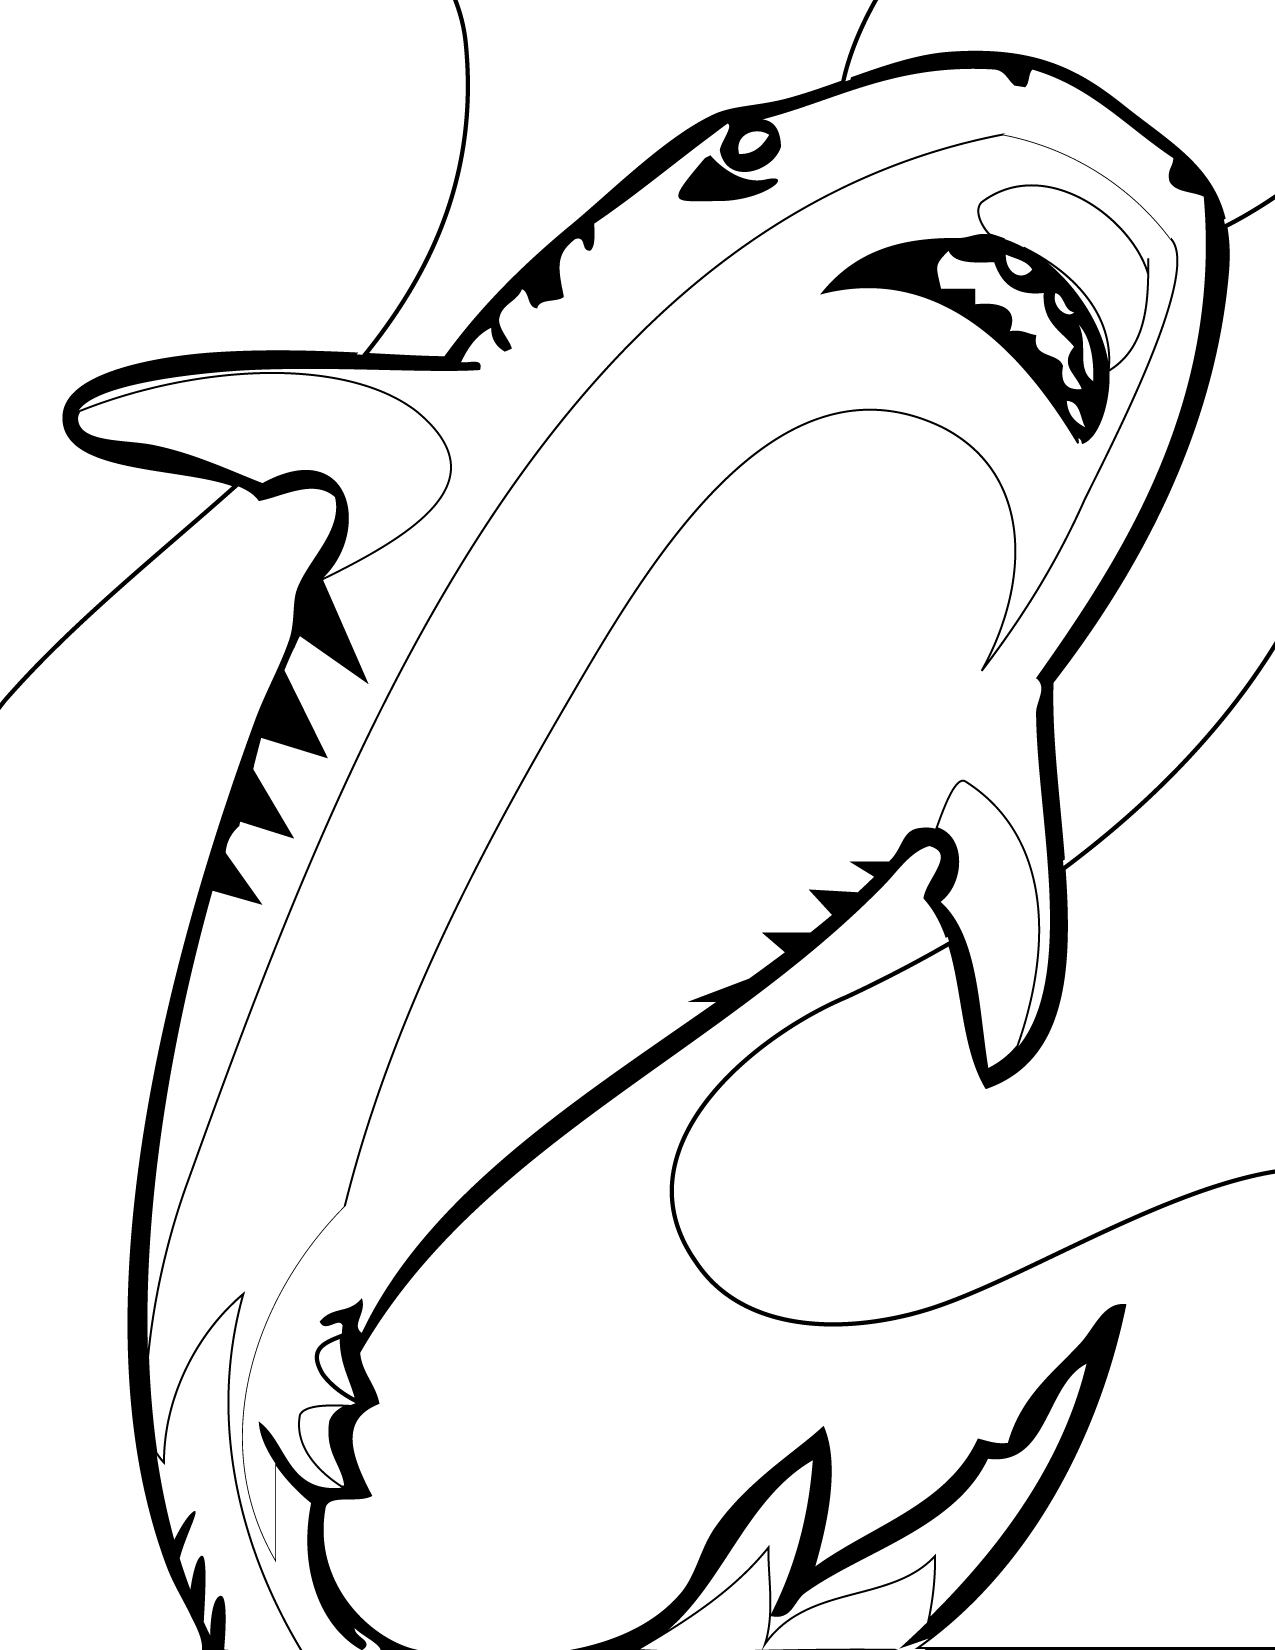 Tiger Shark Coloring Page  Handipoints